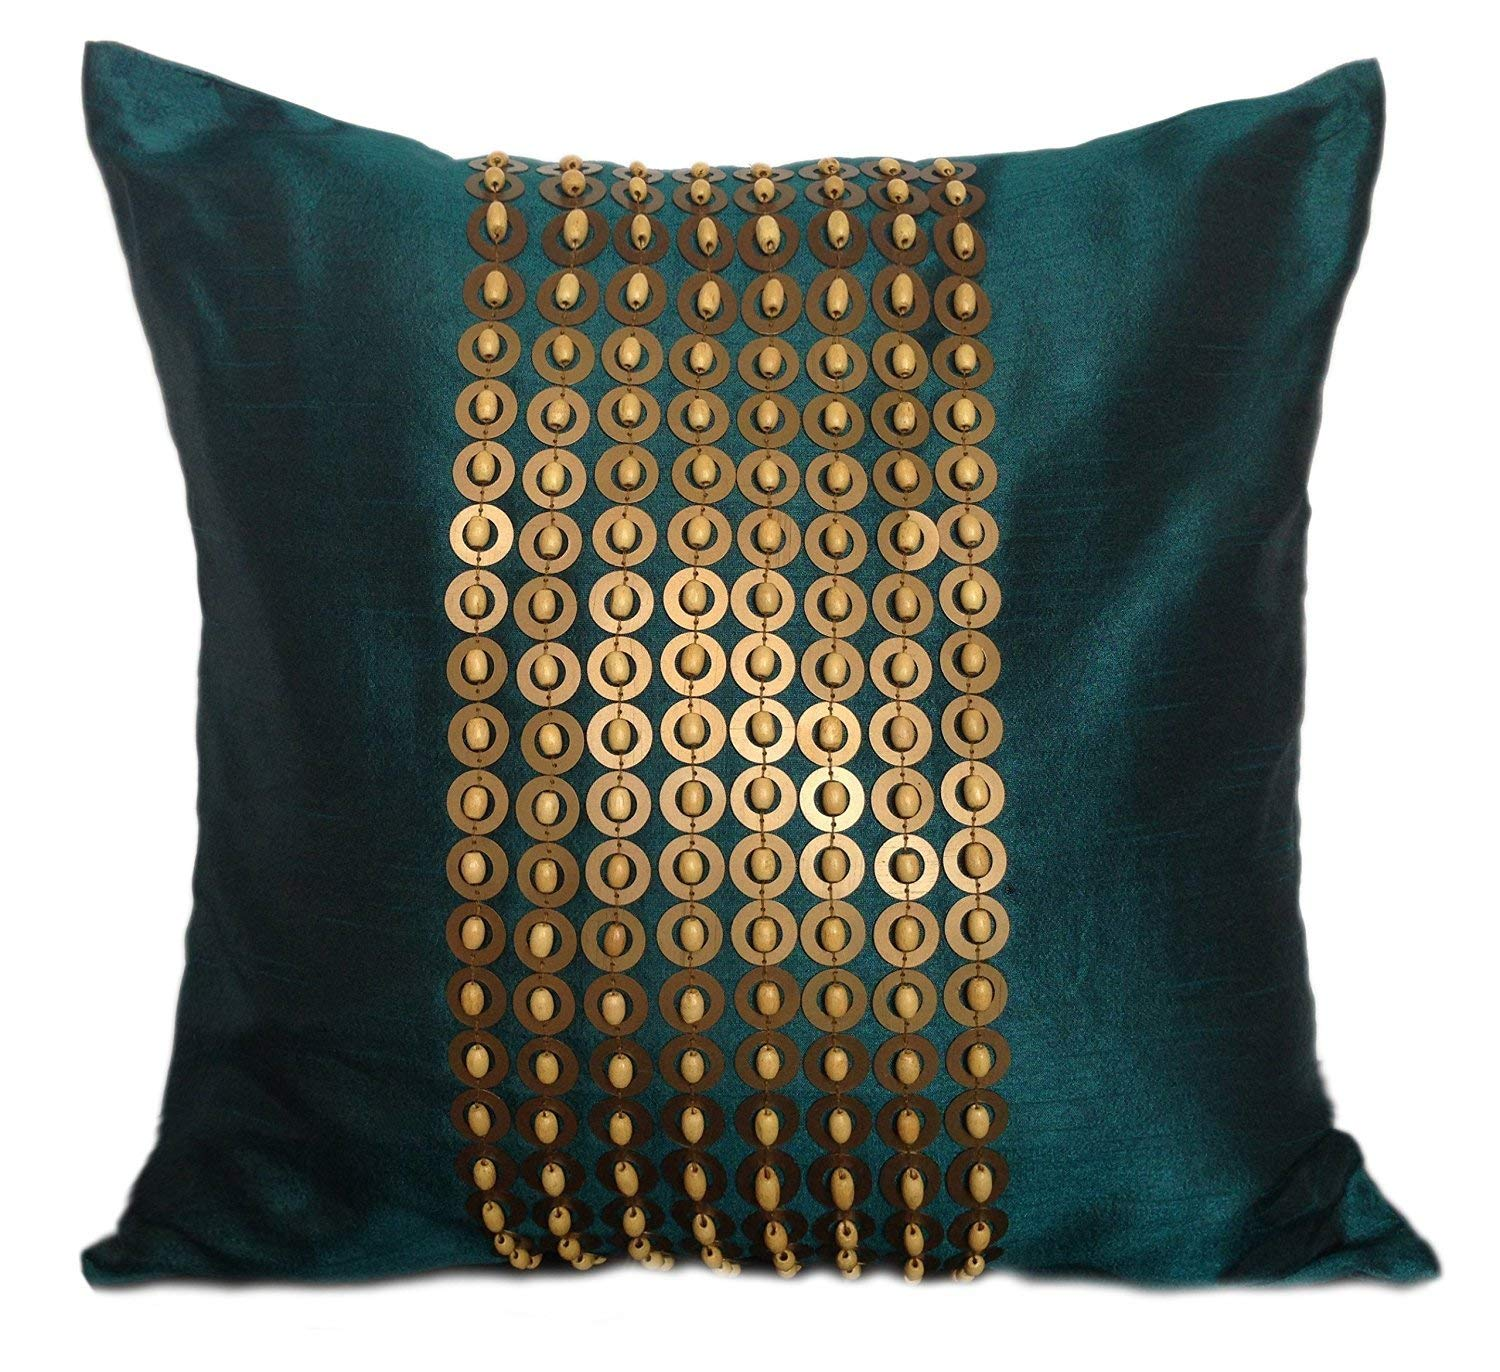 The White Petals Dark Teal Gold Decorative Pillow Cover with Gold Sequins and Wood Bead Embroidery in Panel Pattern (18x18 inch, Dark Teal)